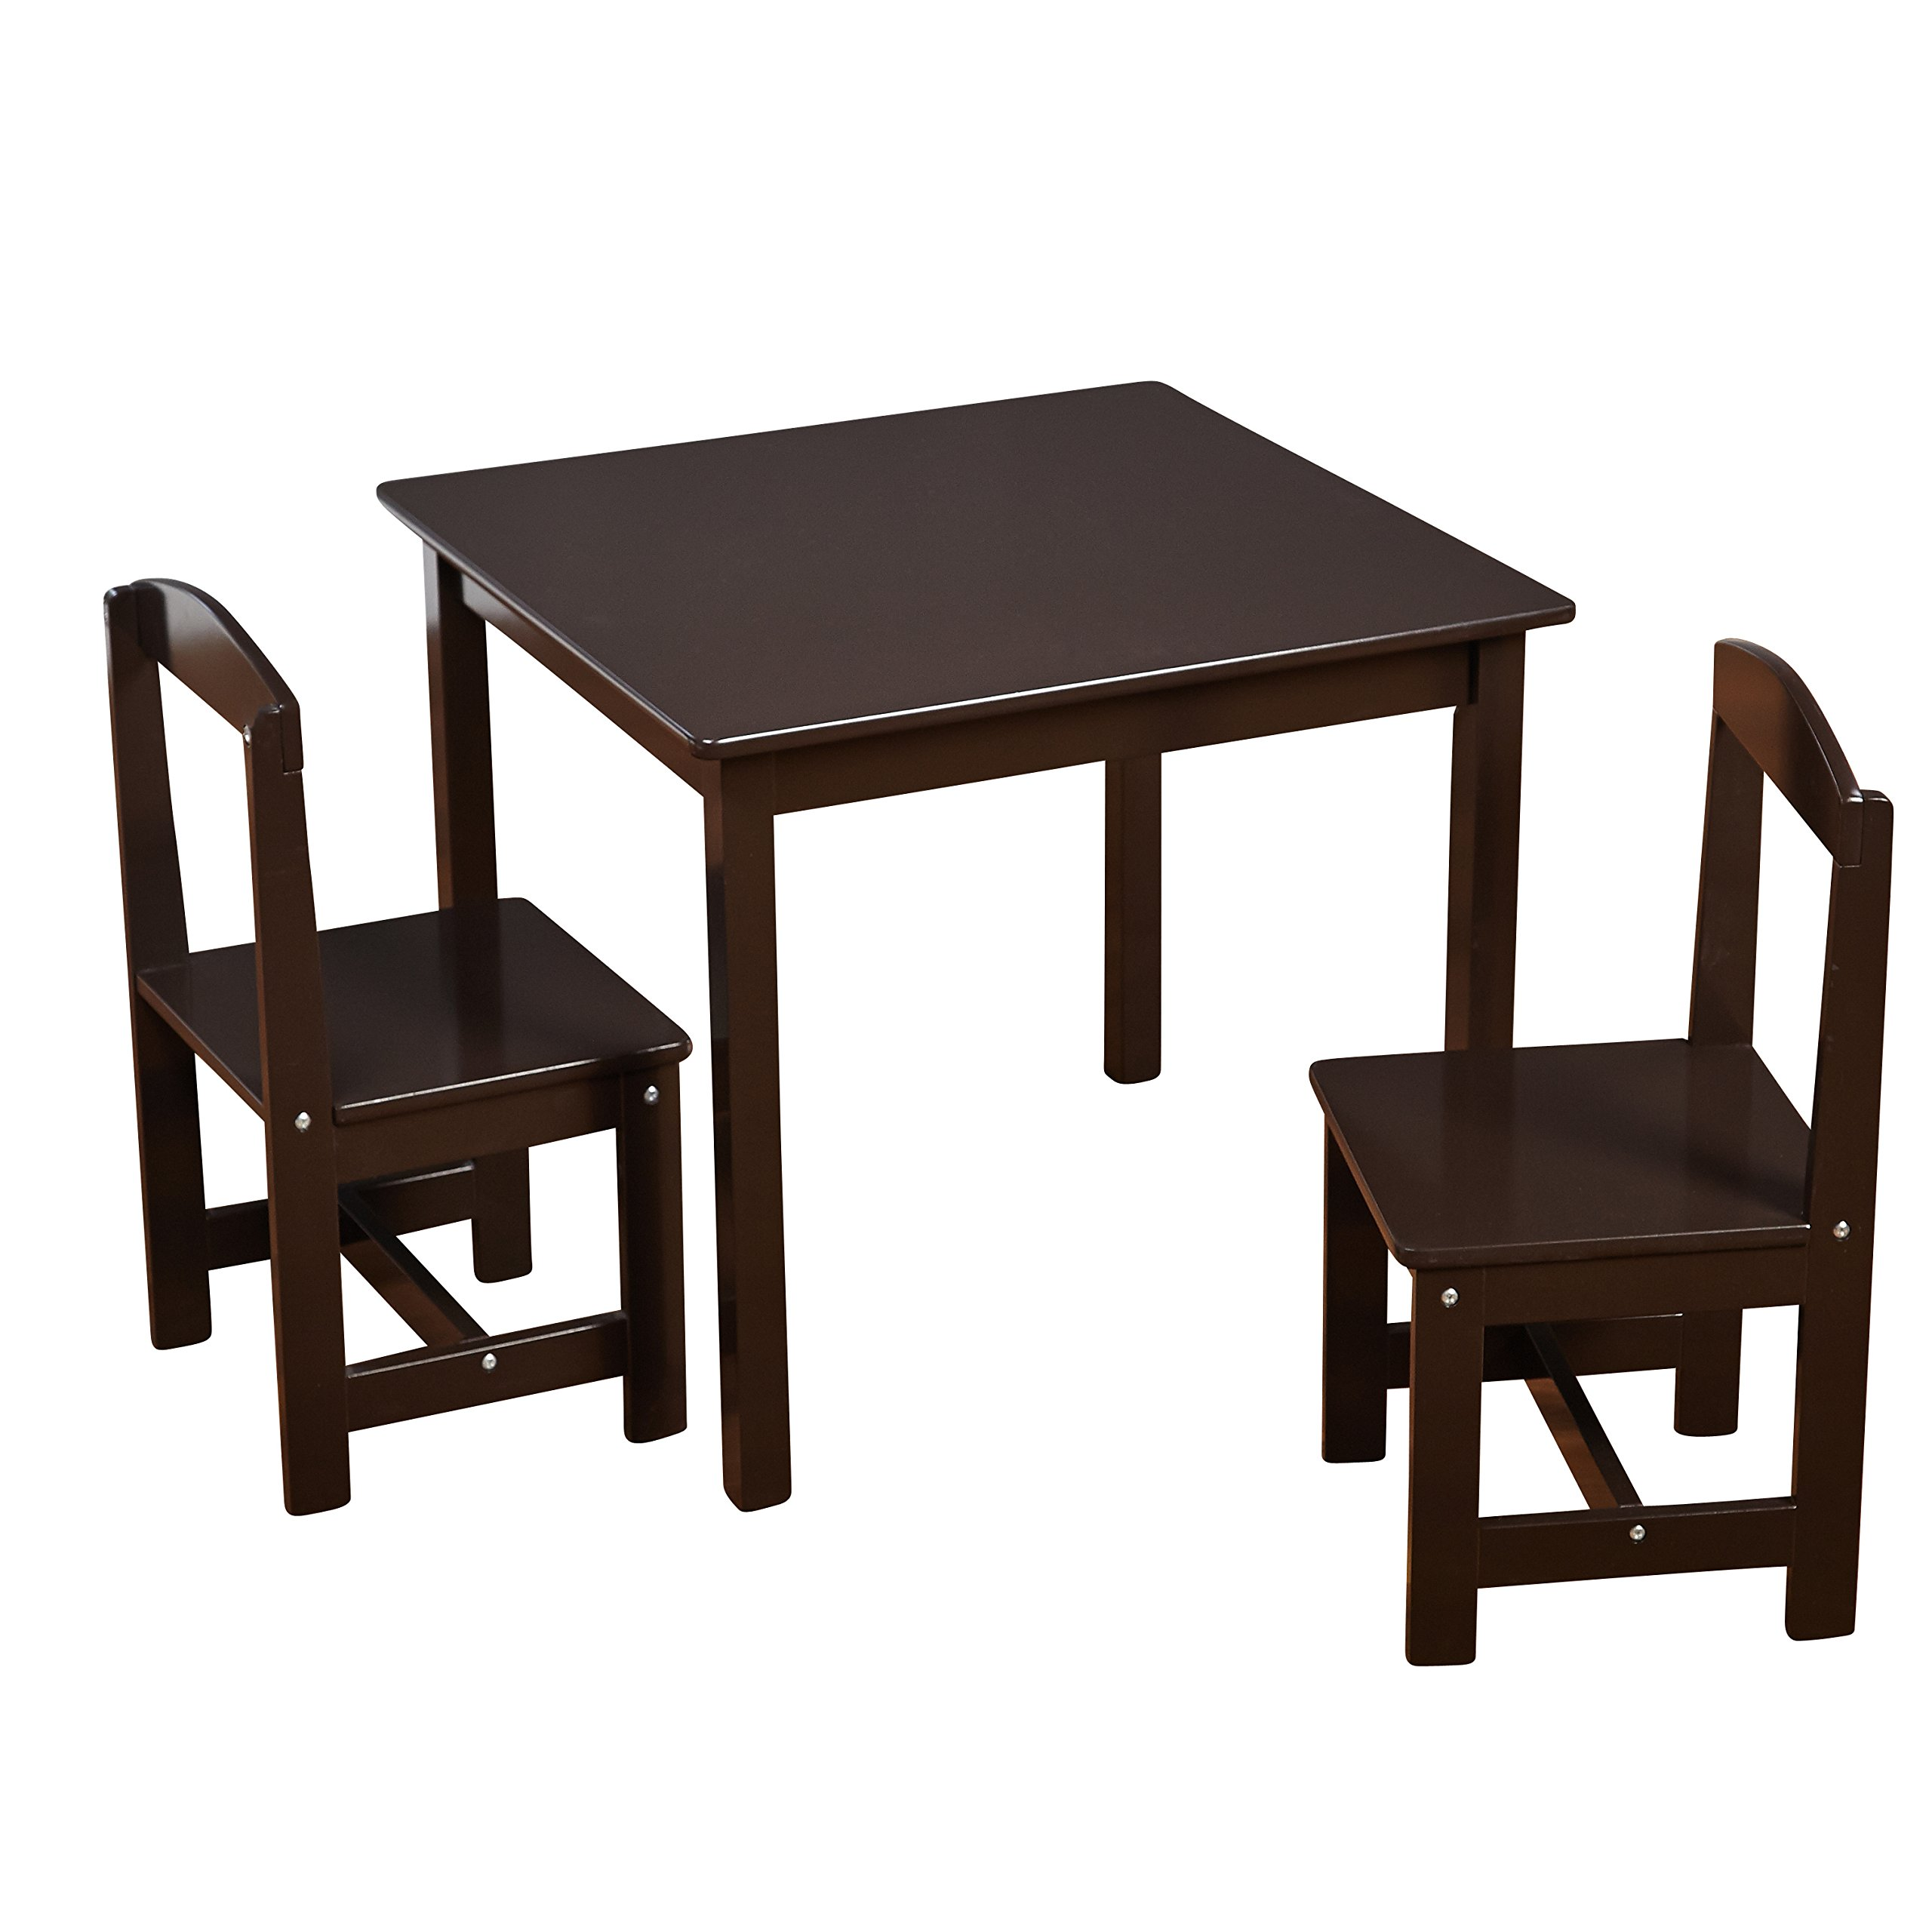 Target Marketing Systems Hayden Kids Table And Chairs, Espresso by Target Marketing Systems